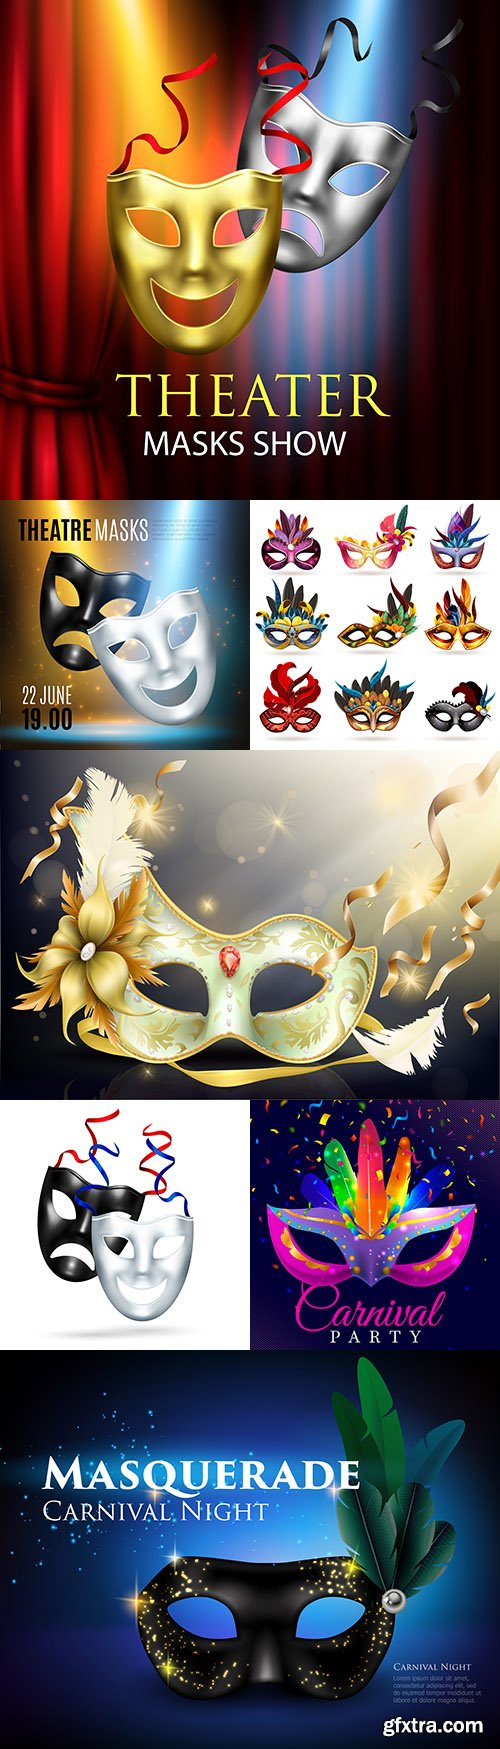 Decorative theatrical and carnival face mask design